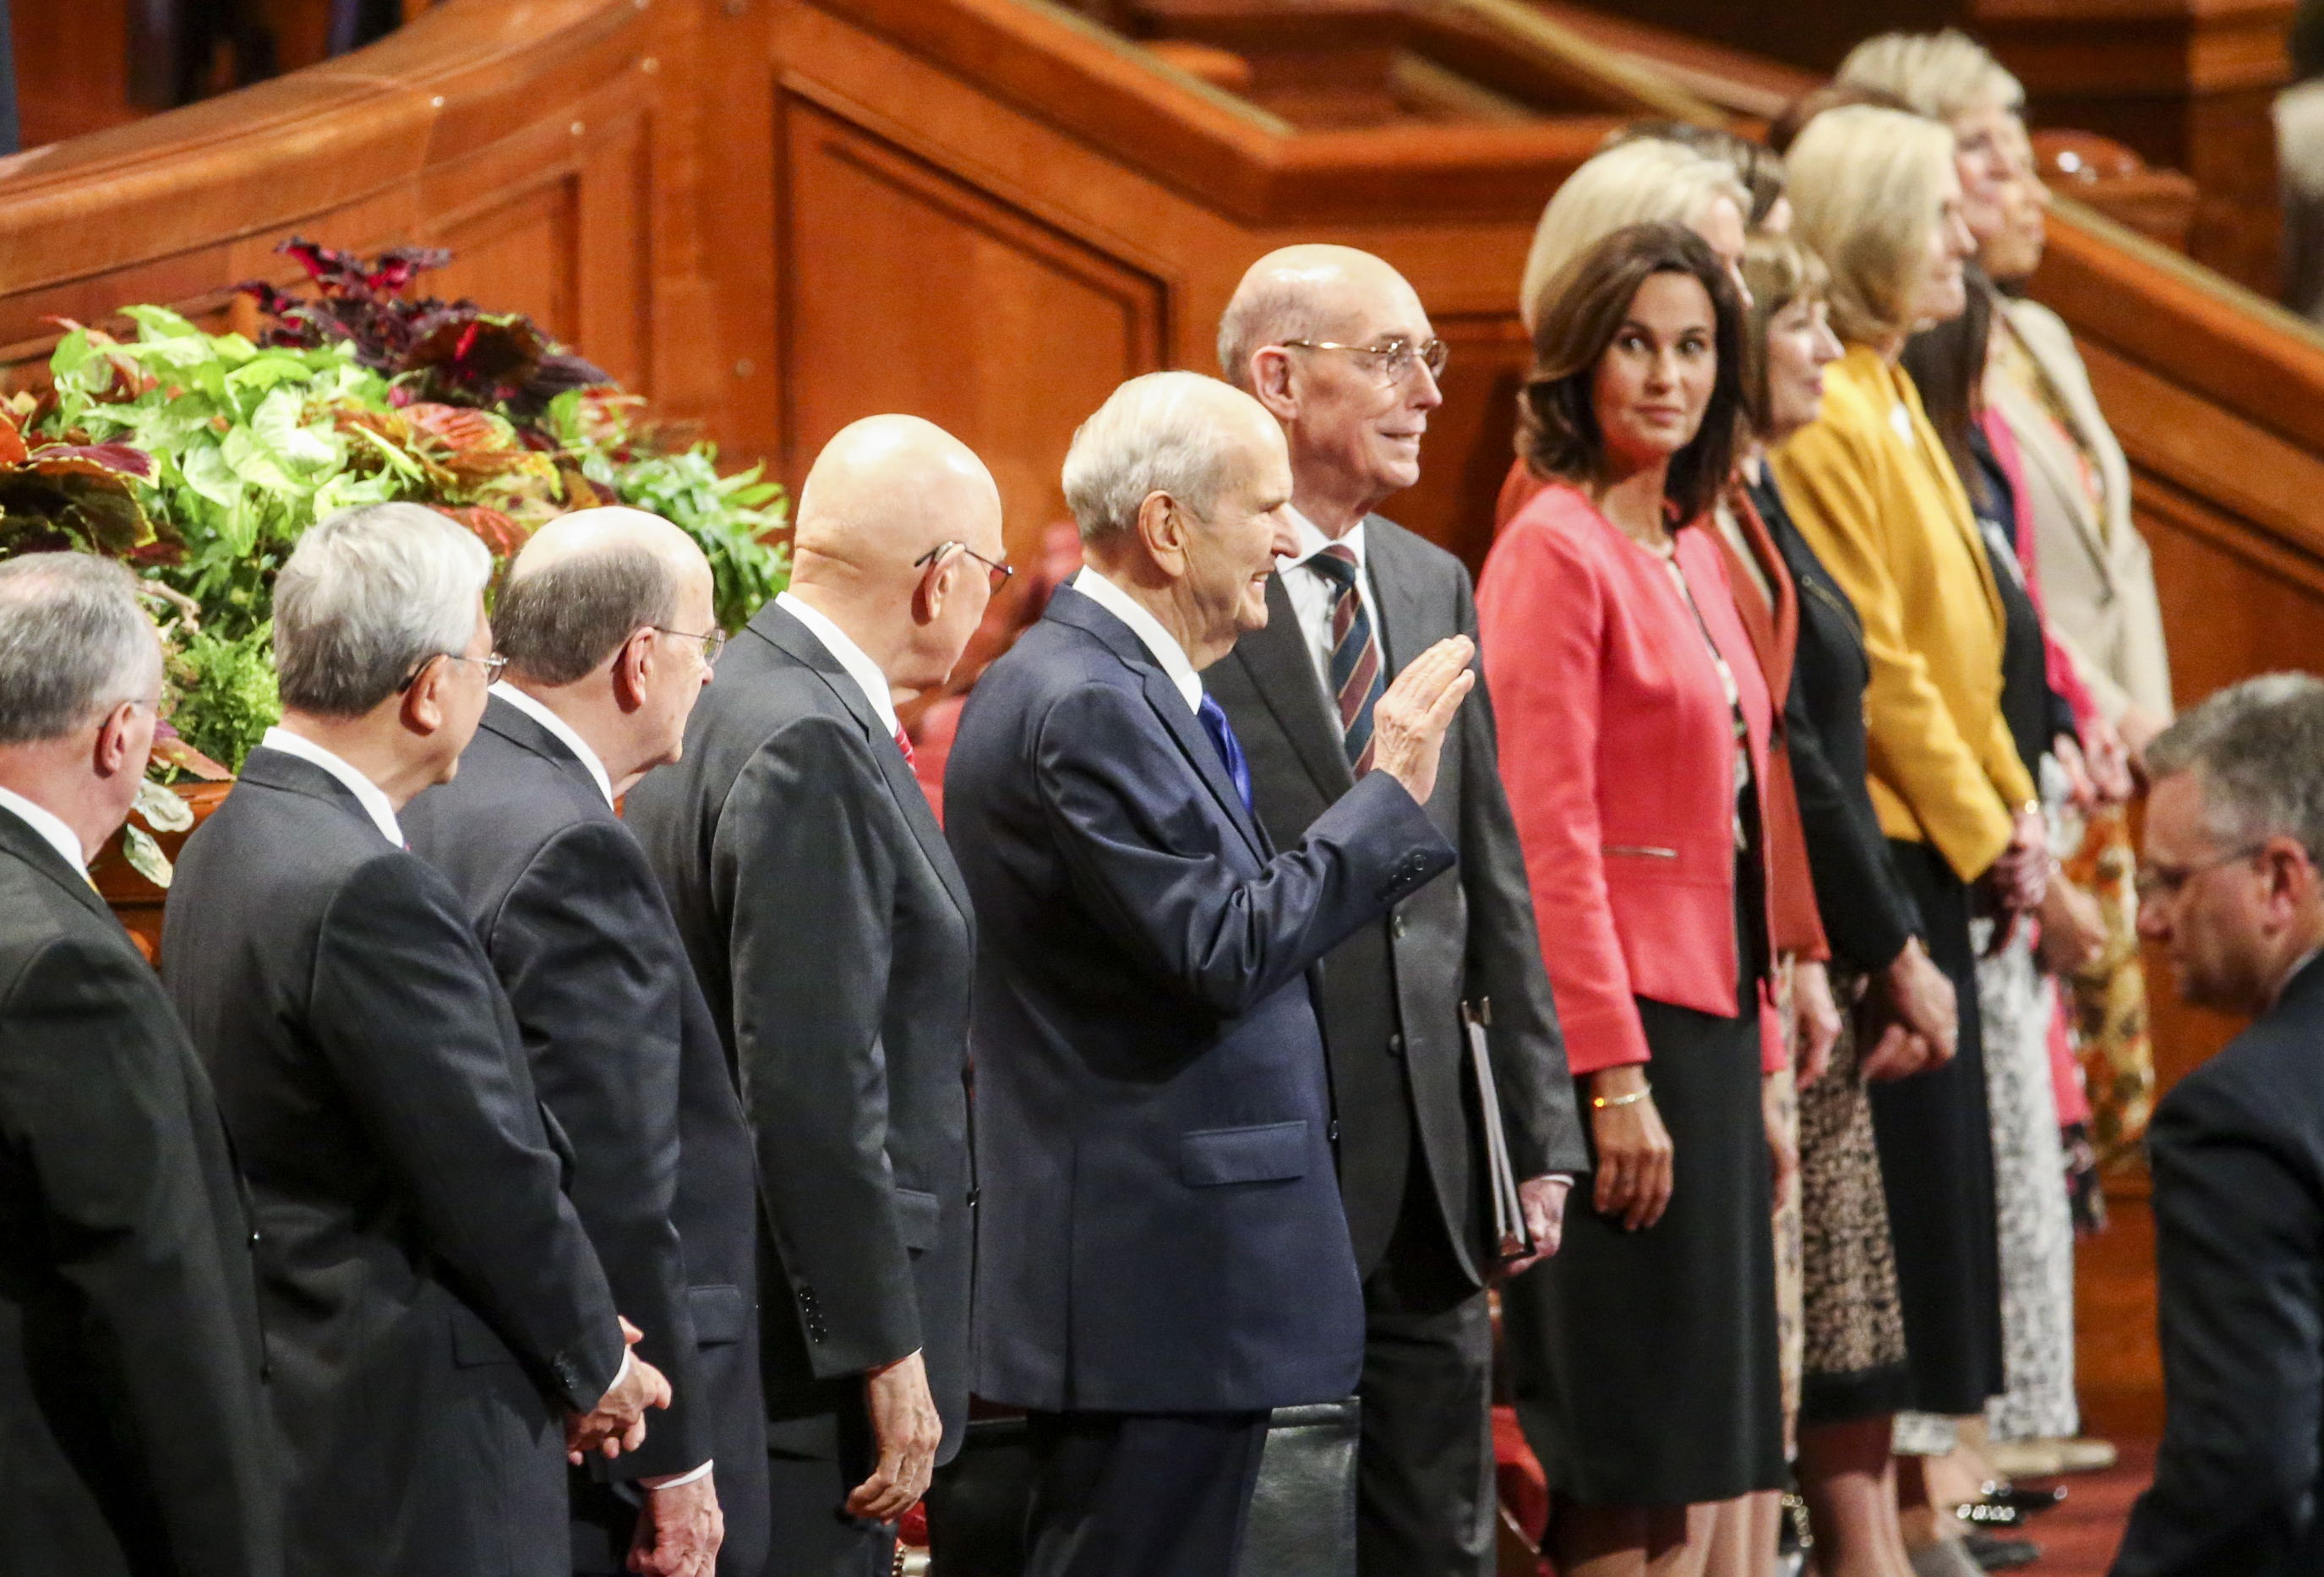 President Russell M. Nelson, center, waves to conferencegoers before the general women's session of the 189th Semiannual General Conference of The Church of Jesus Christ of Latter-day Saints in the Conference Center in Salt Lake City on Saturday, Oct. 5, 2019.